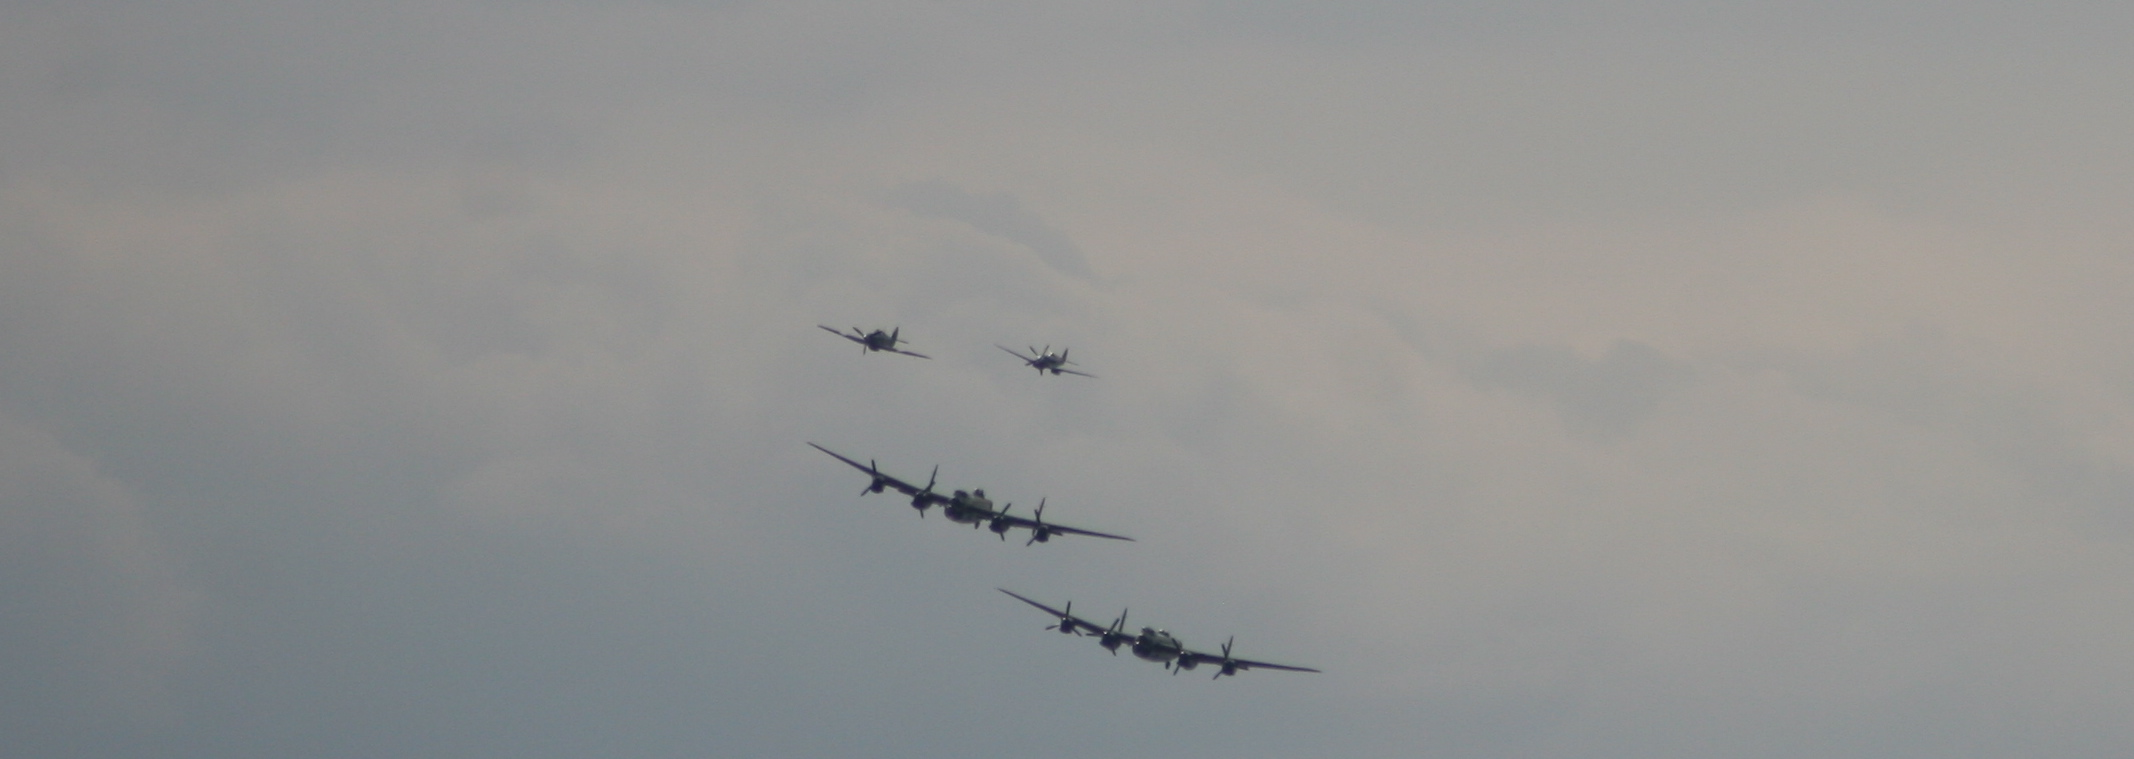 The Lancasters and escort planes